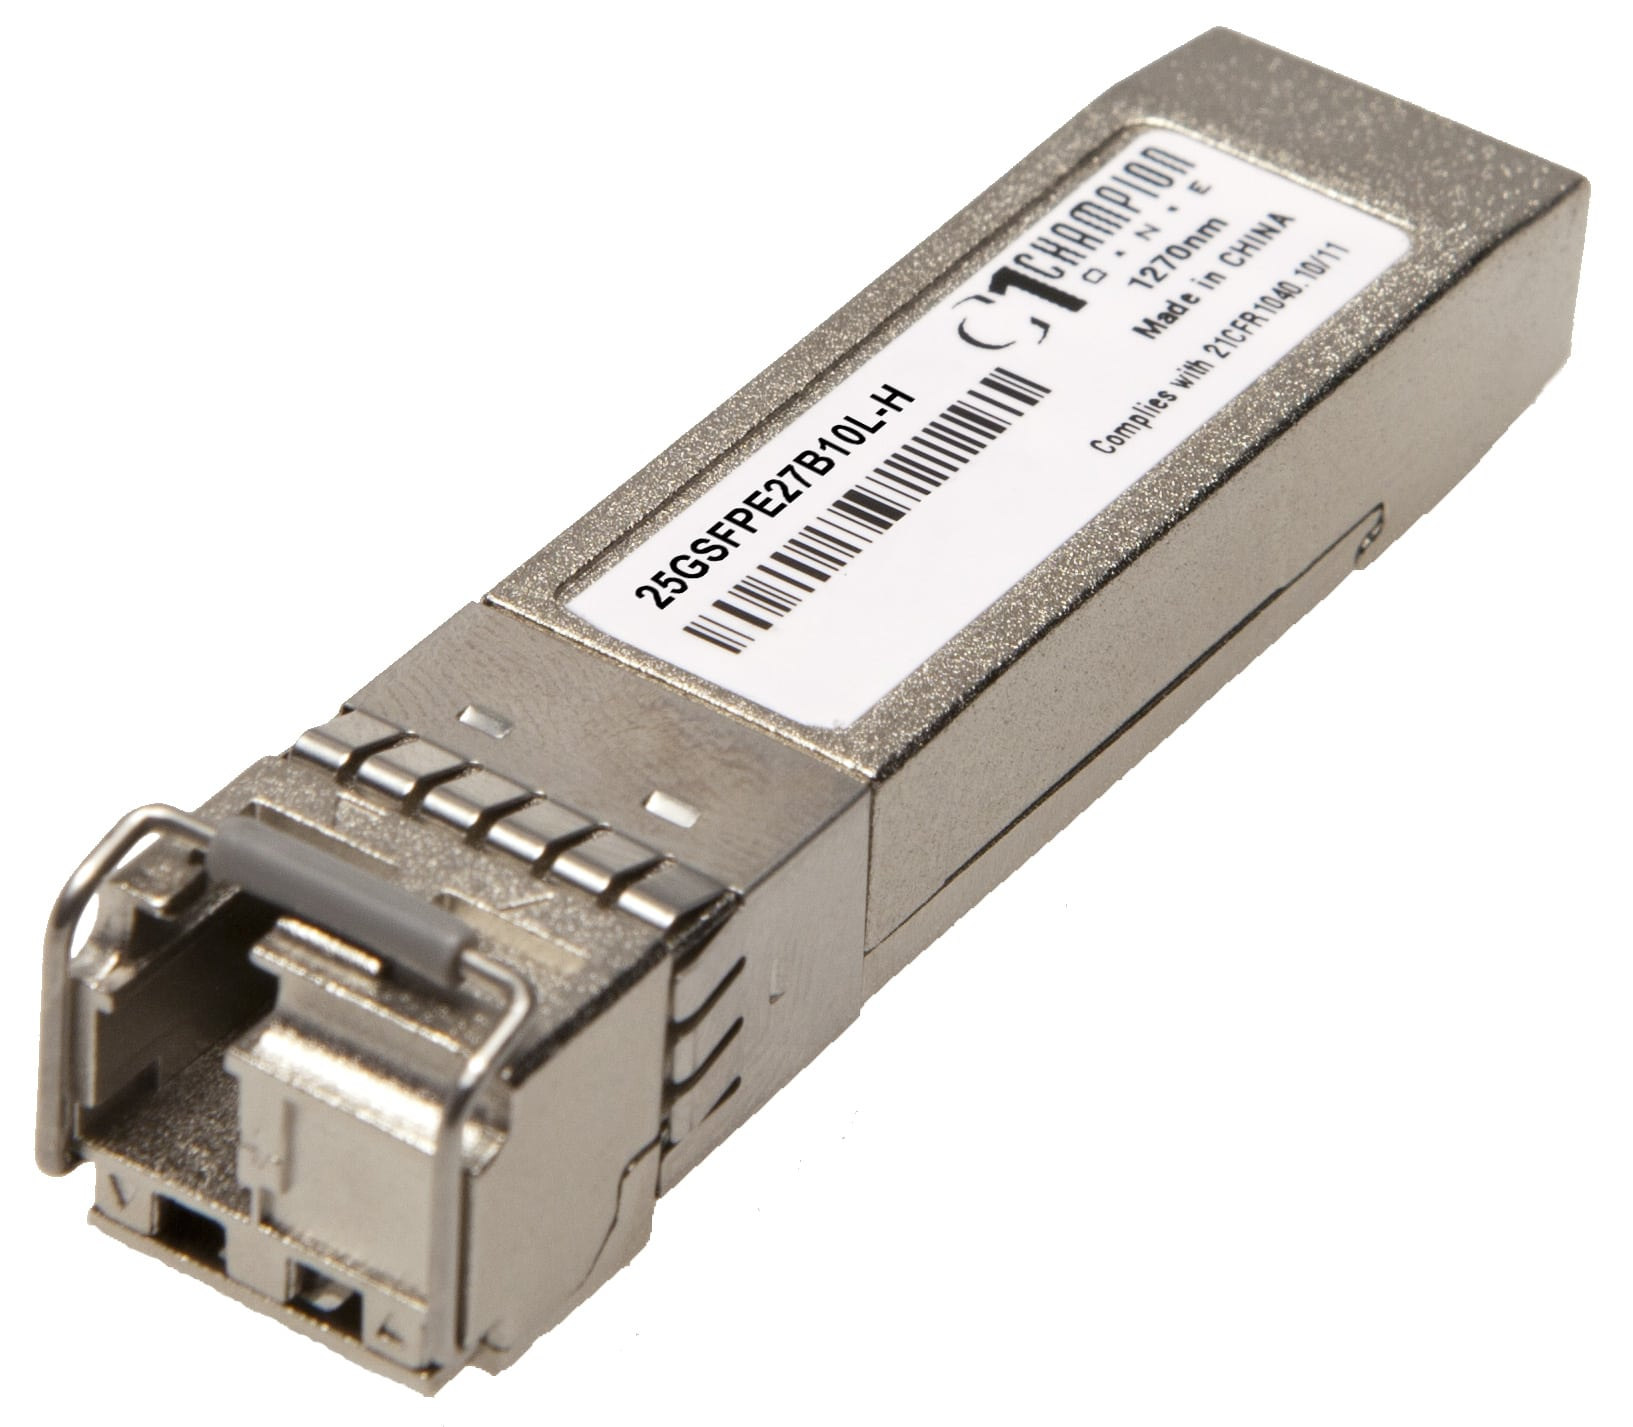 Single-Fiber 25GBASE-LR SFP28 SMF 10km temp-hardened 1270Tx/1330Rx